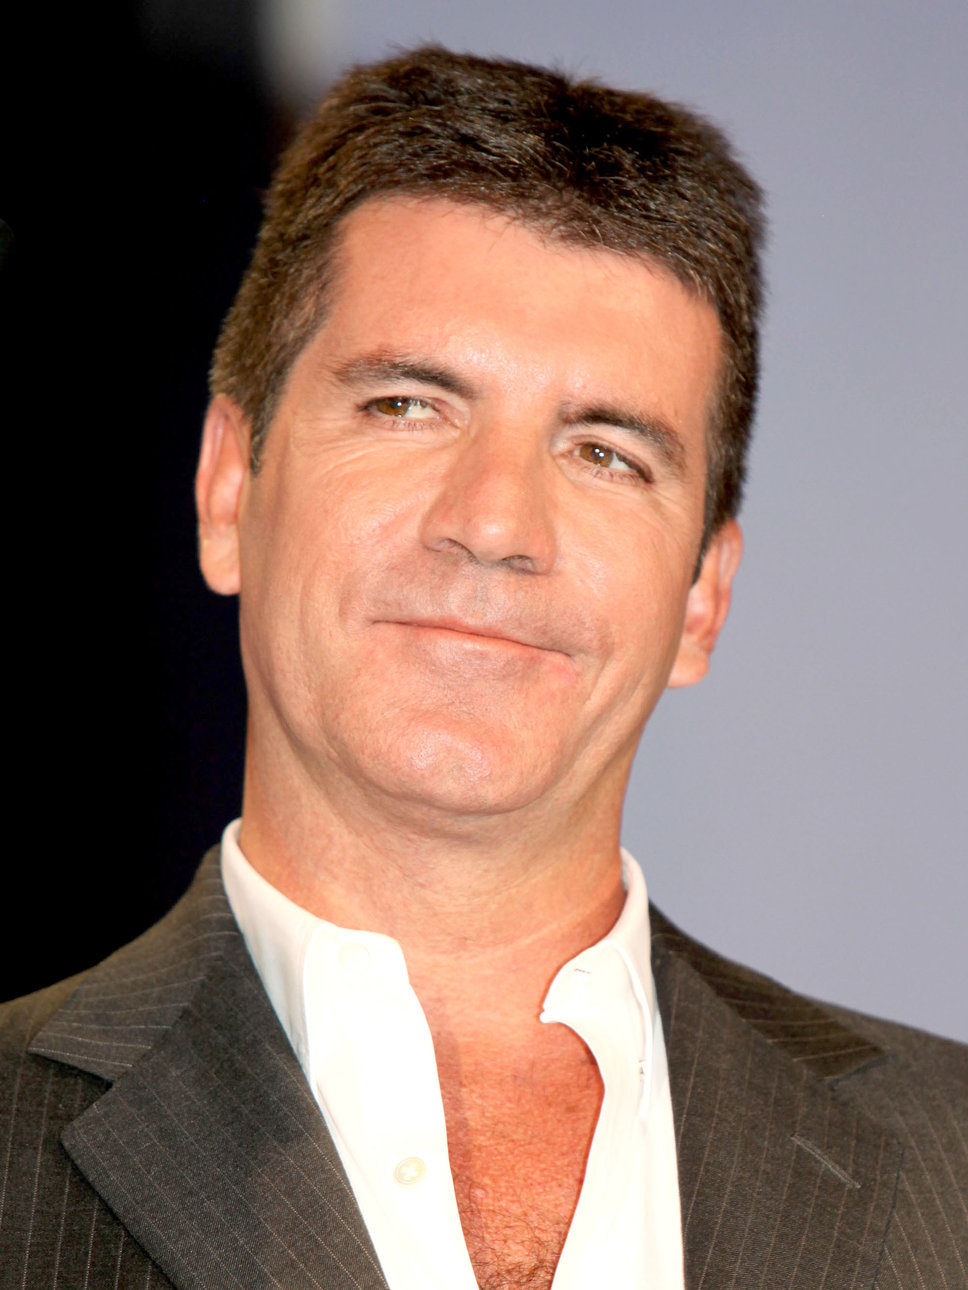 Simon Cowell avoids ettiquette effect